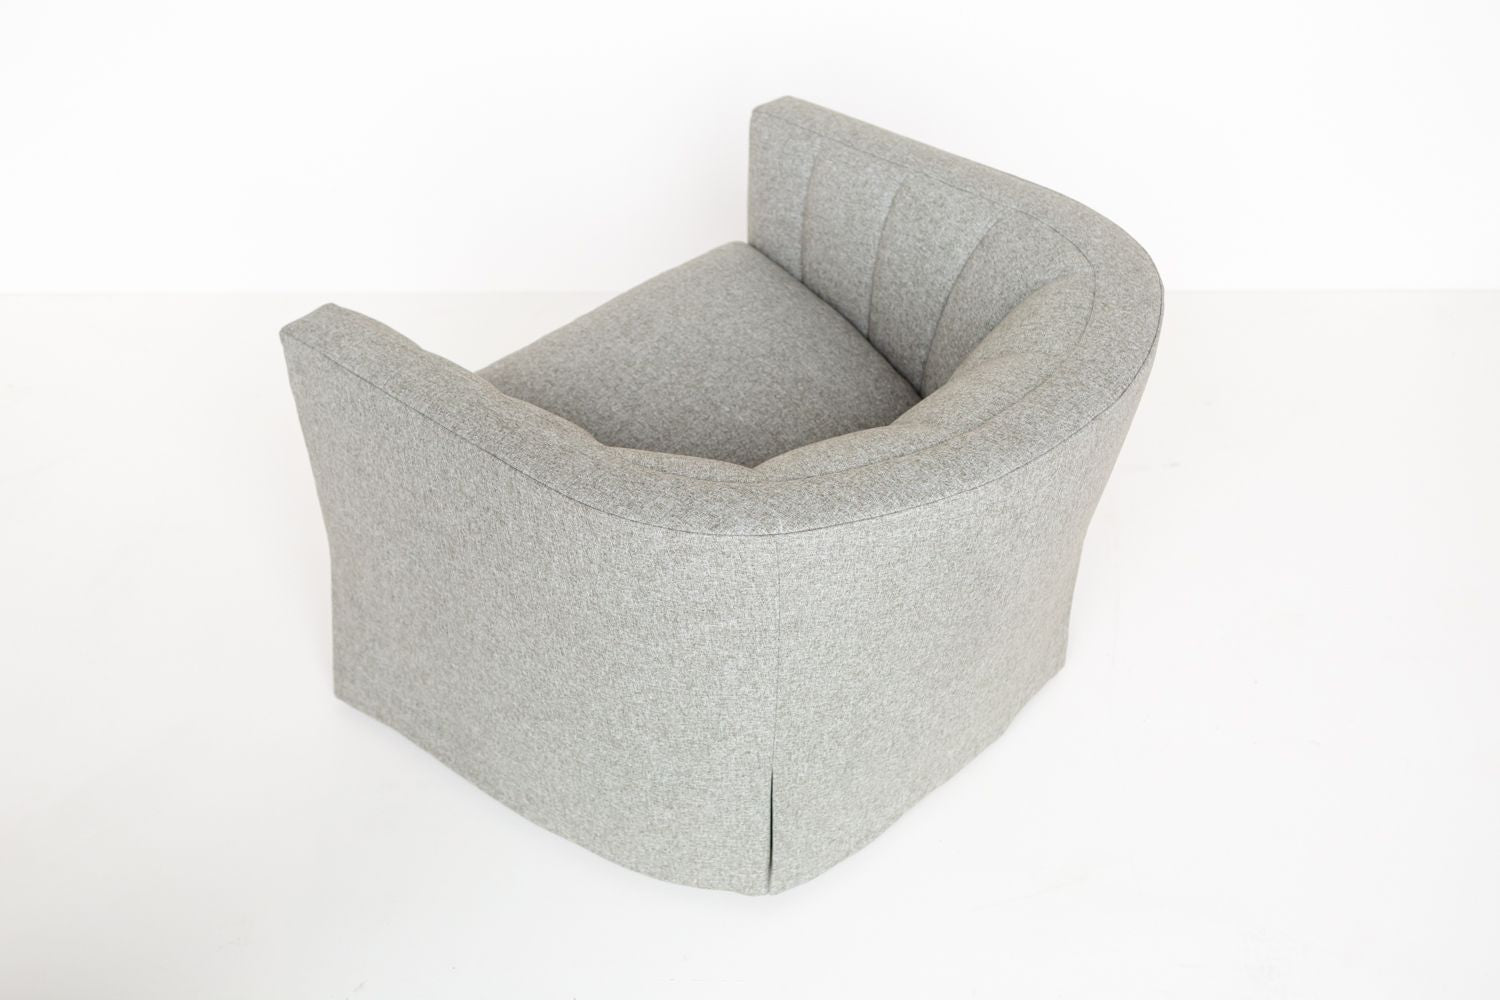 Rear top view product shot of the ffabb home Coco Swivel Chair